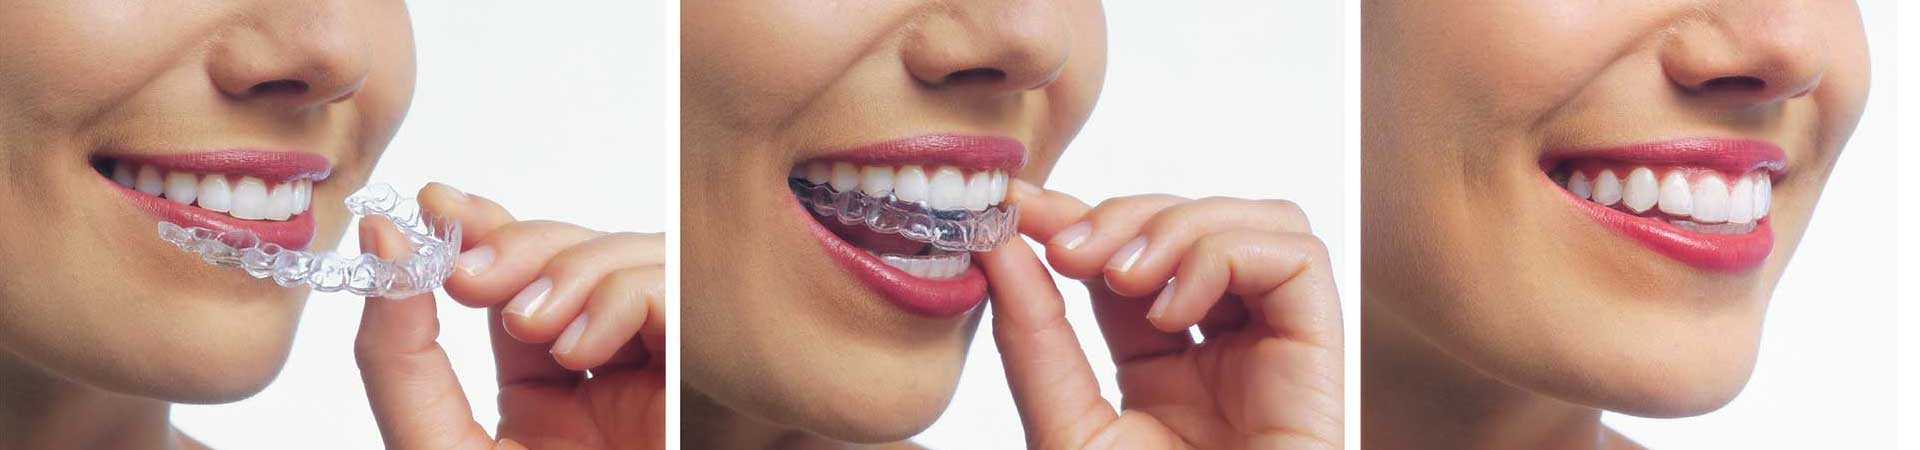 Invisalign Aligner at Northeast Orthodontic Specialists in Loveland Cincinnati OH